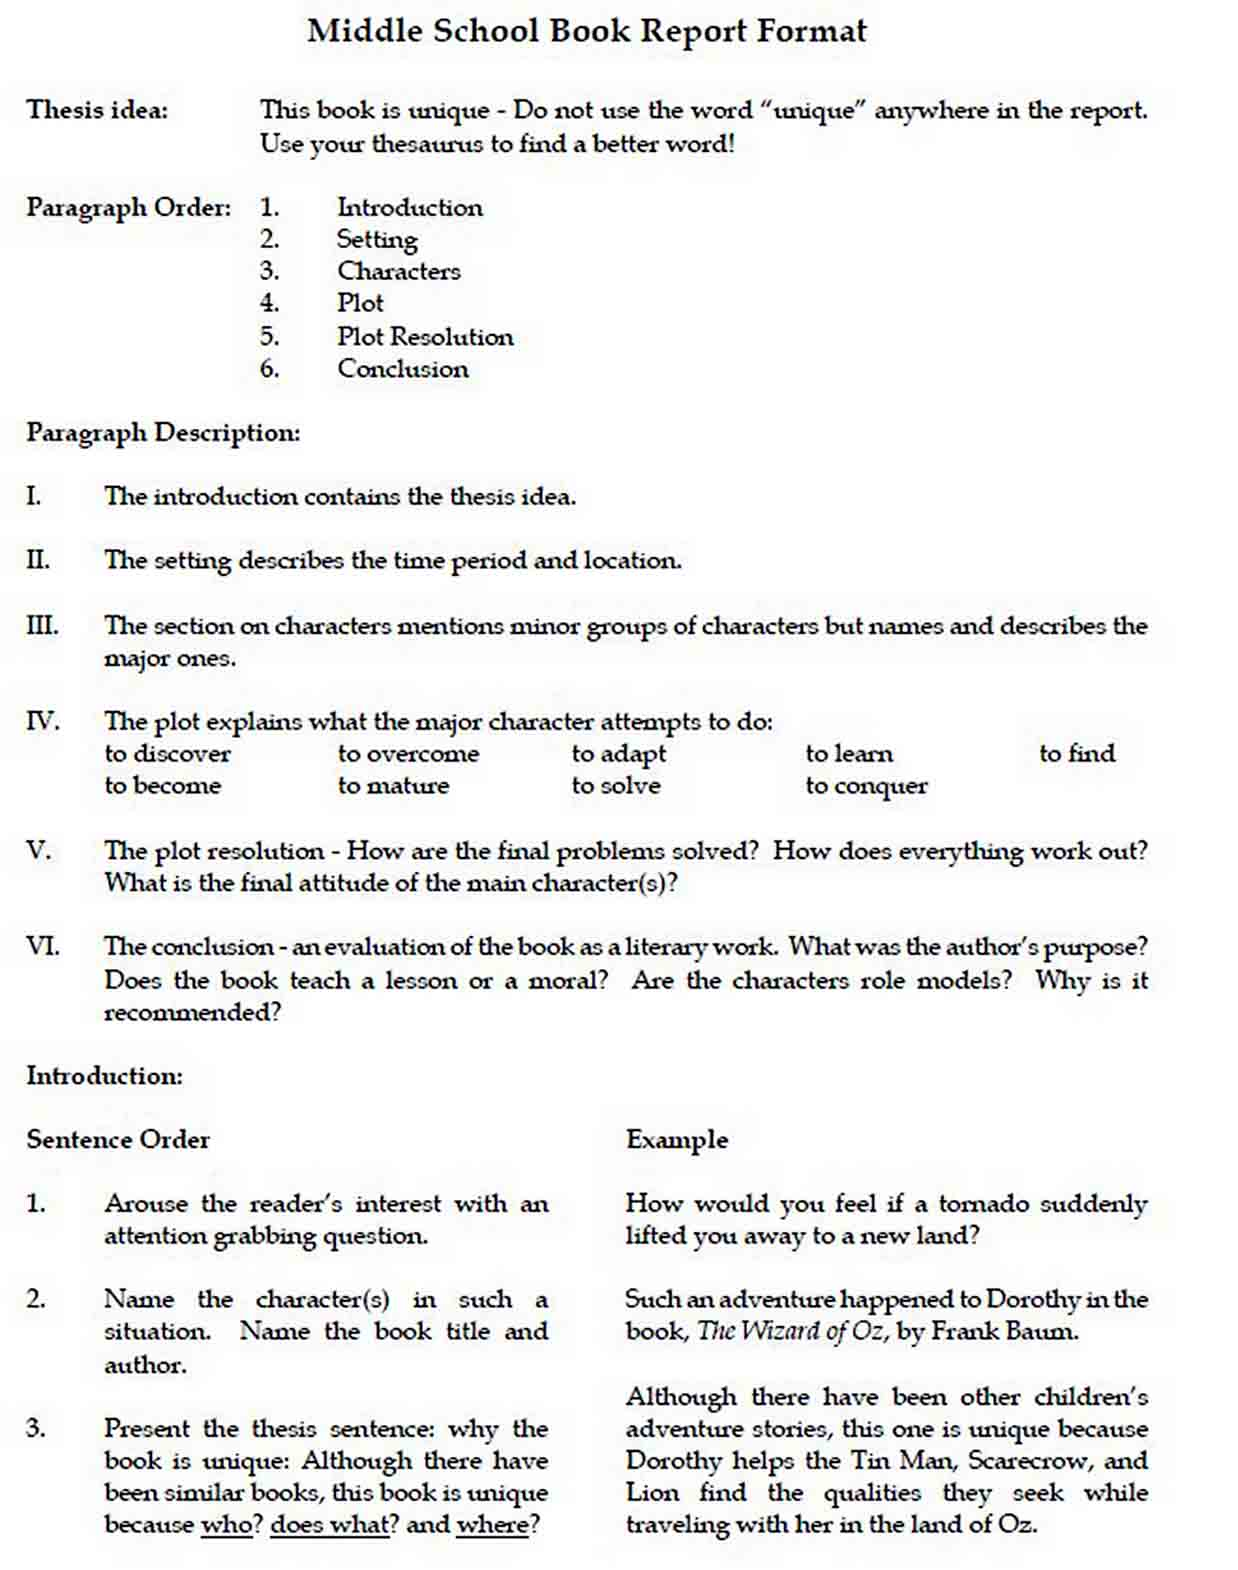 Free Middle School Book Report Format sample